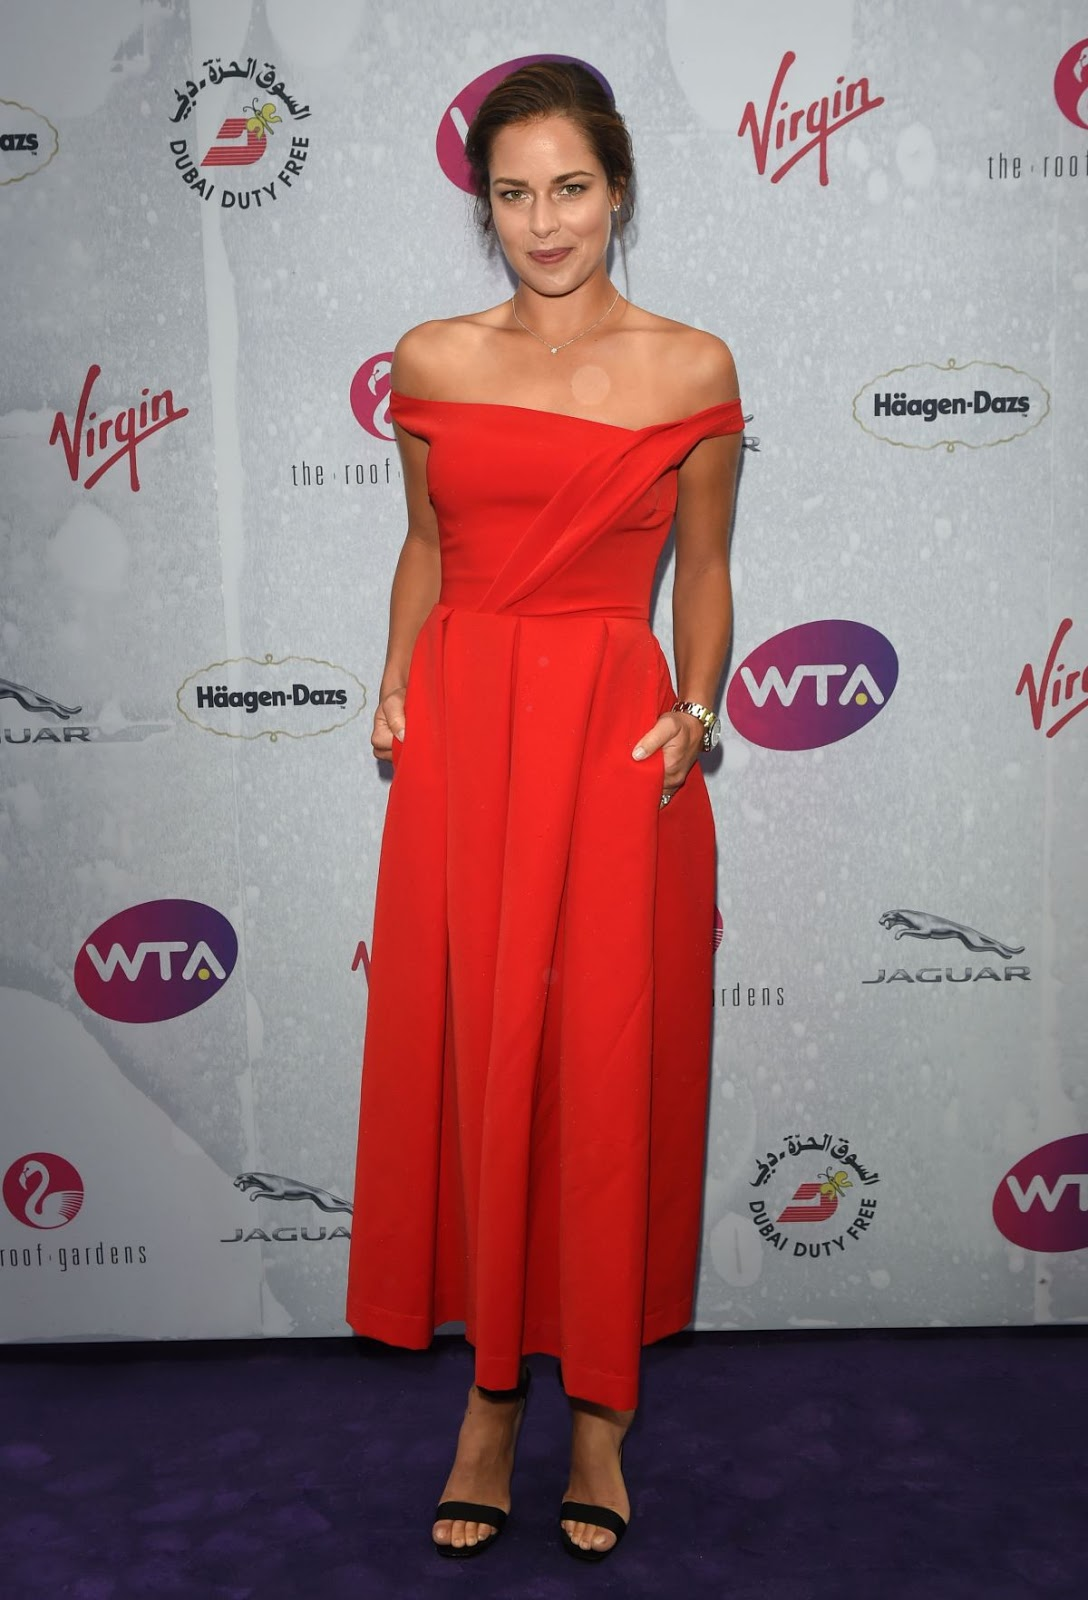 Ultra HD Images of Ana Ivanovic at WTA Pre Wimbledon Party in London